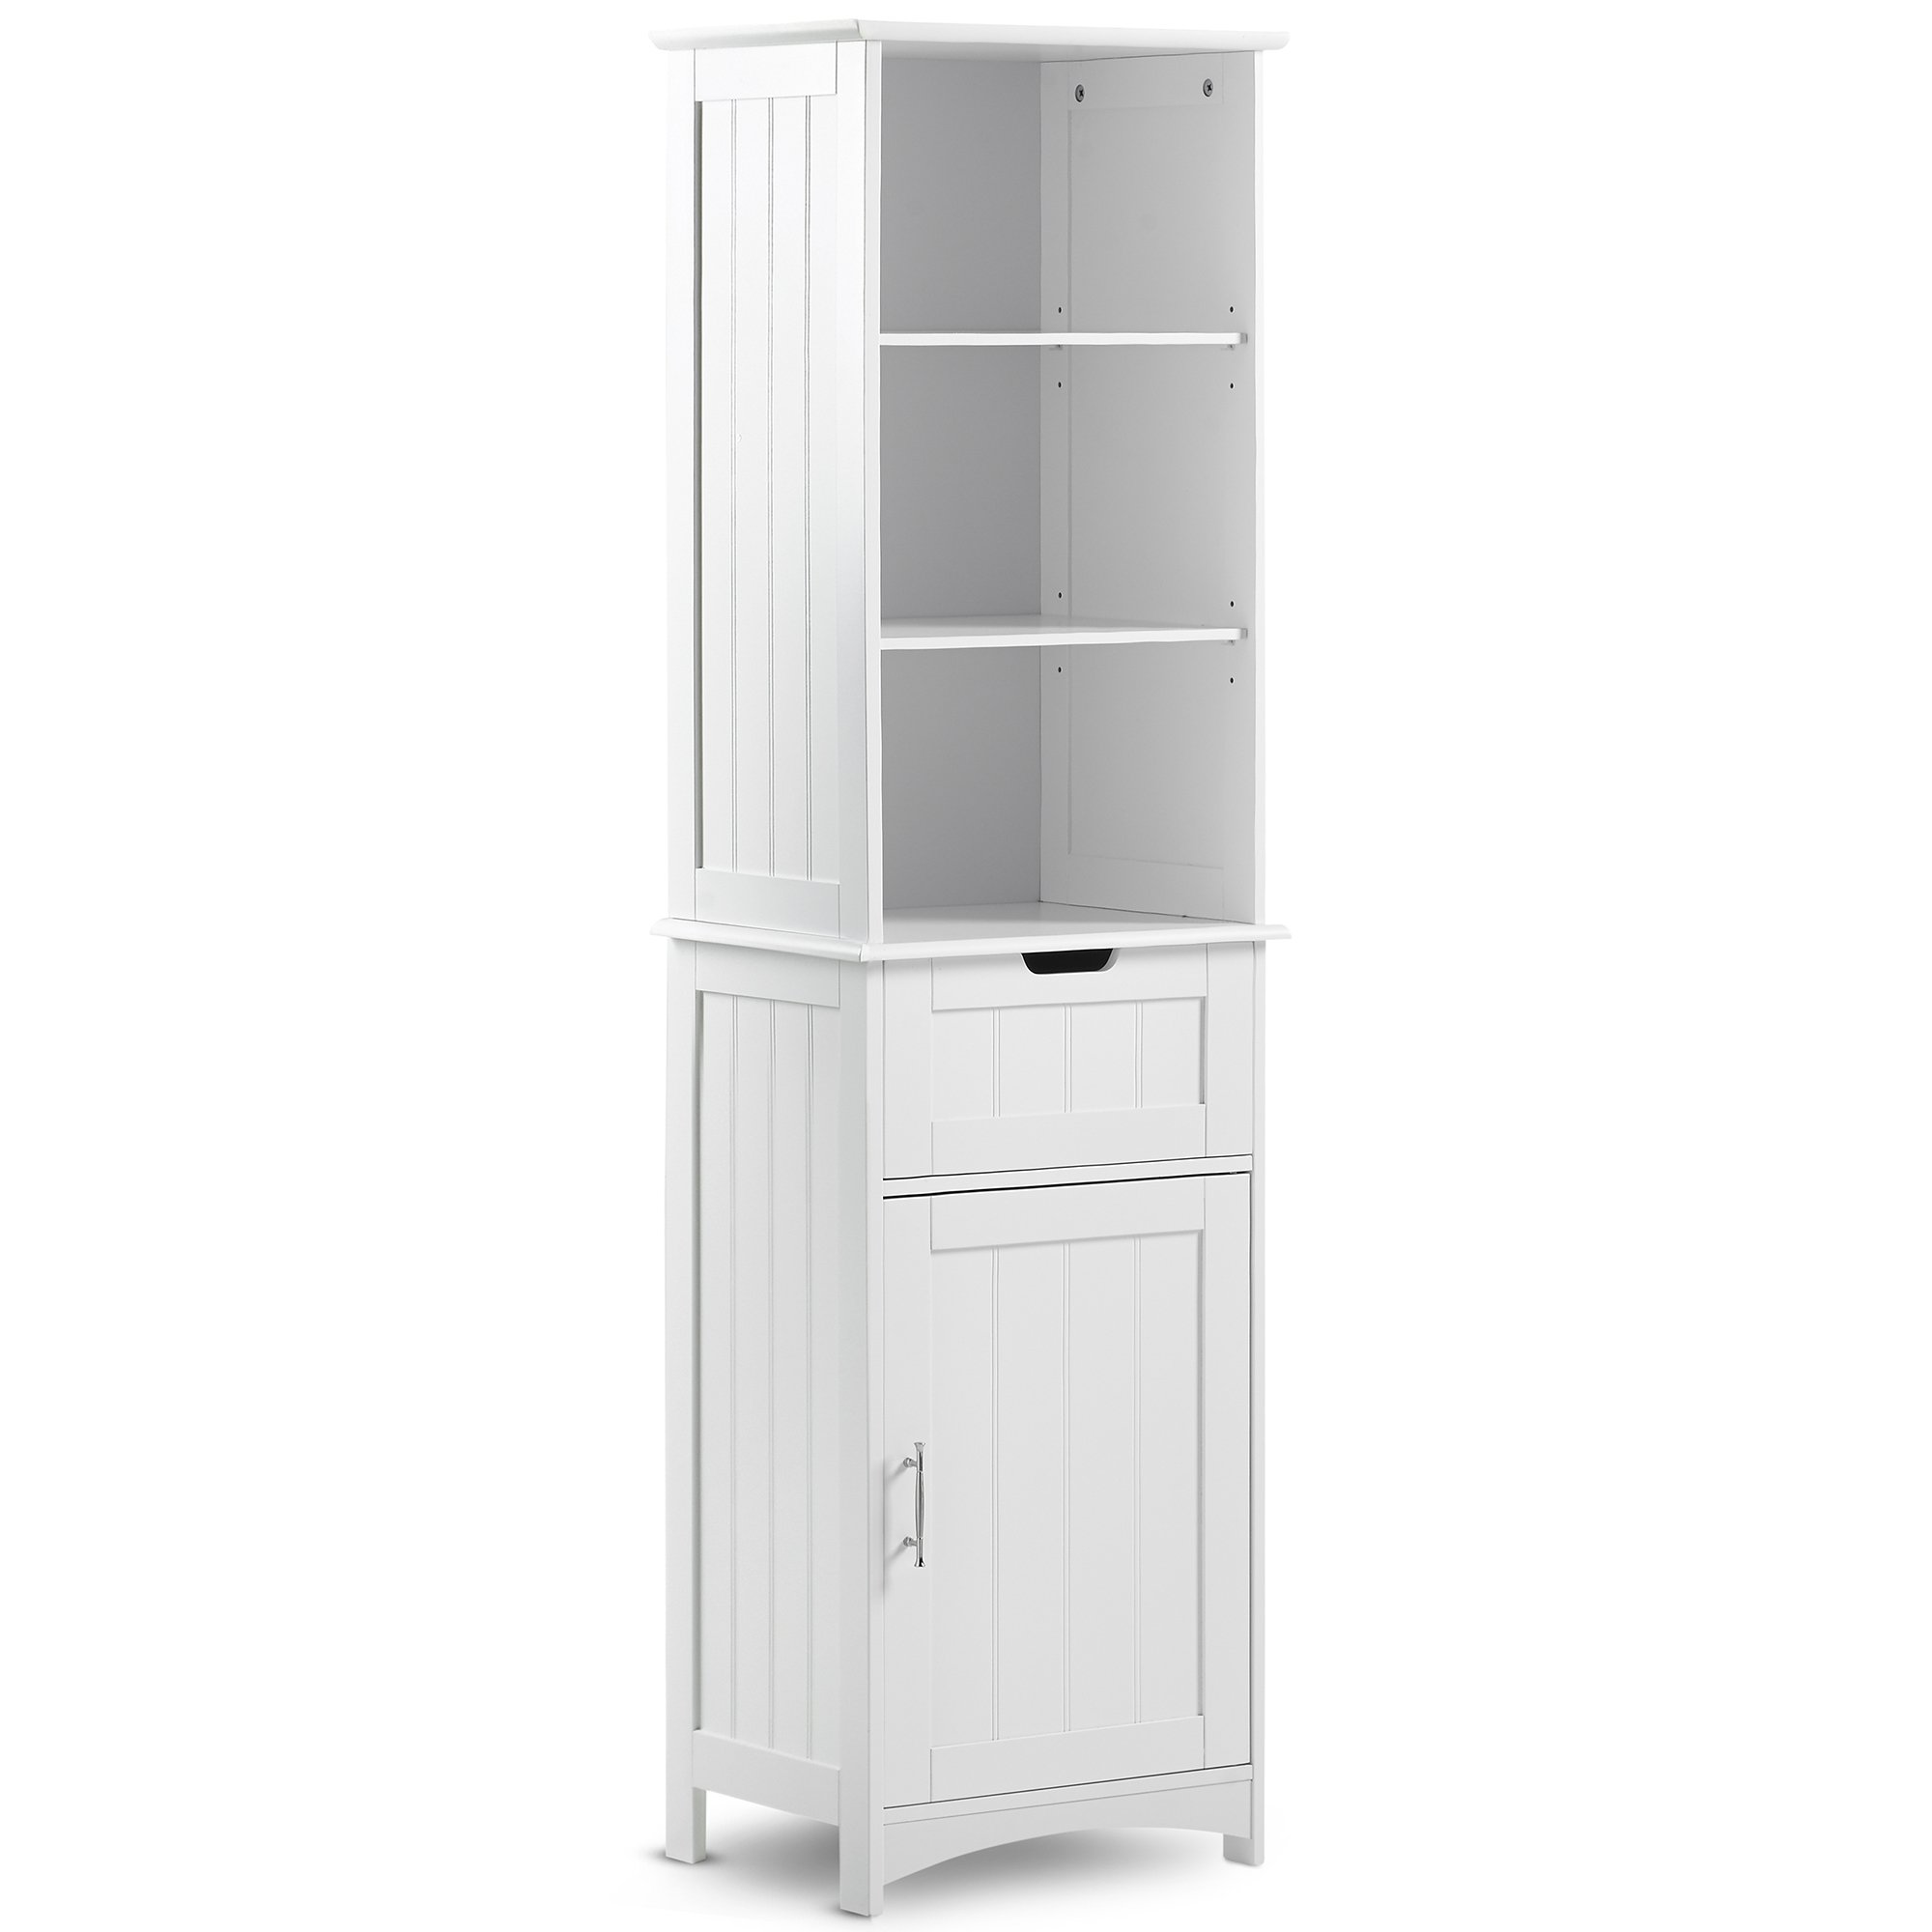 VonHaus Tall Bathroom Storage Cabinet Unit with 5 Shelves and Drawer - Classic White Finish with Chrome Handle (Includes All Hardware)